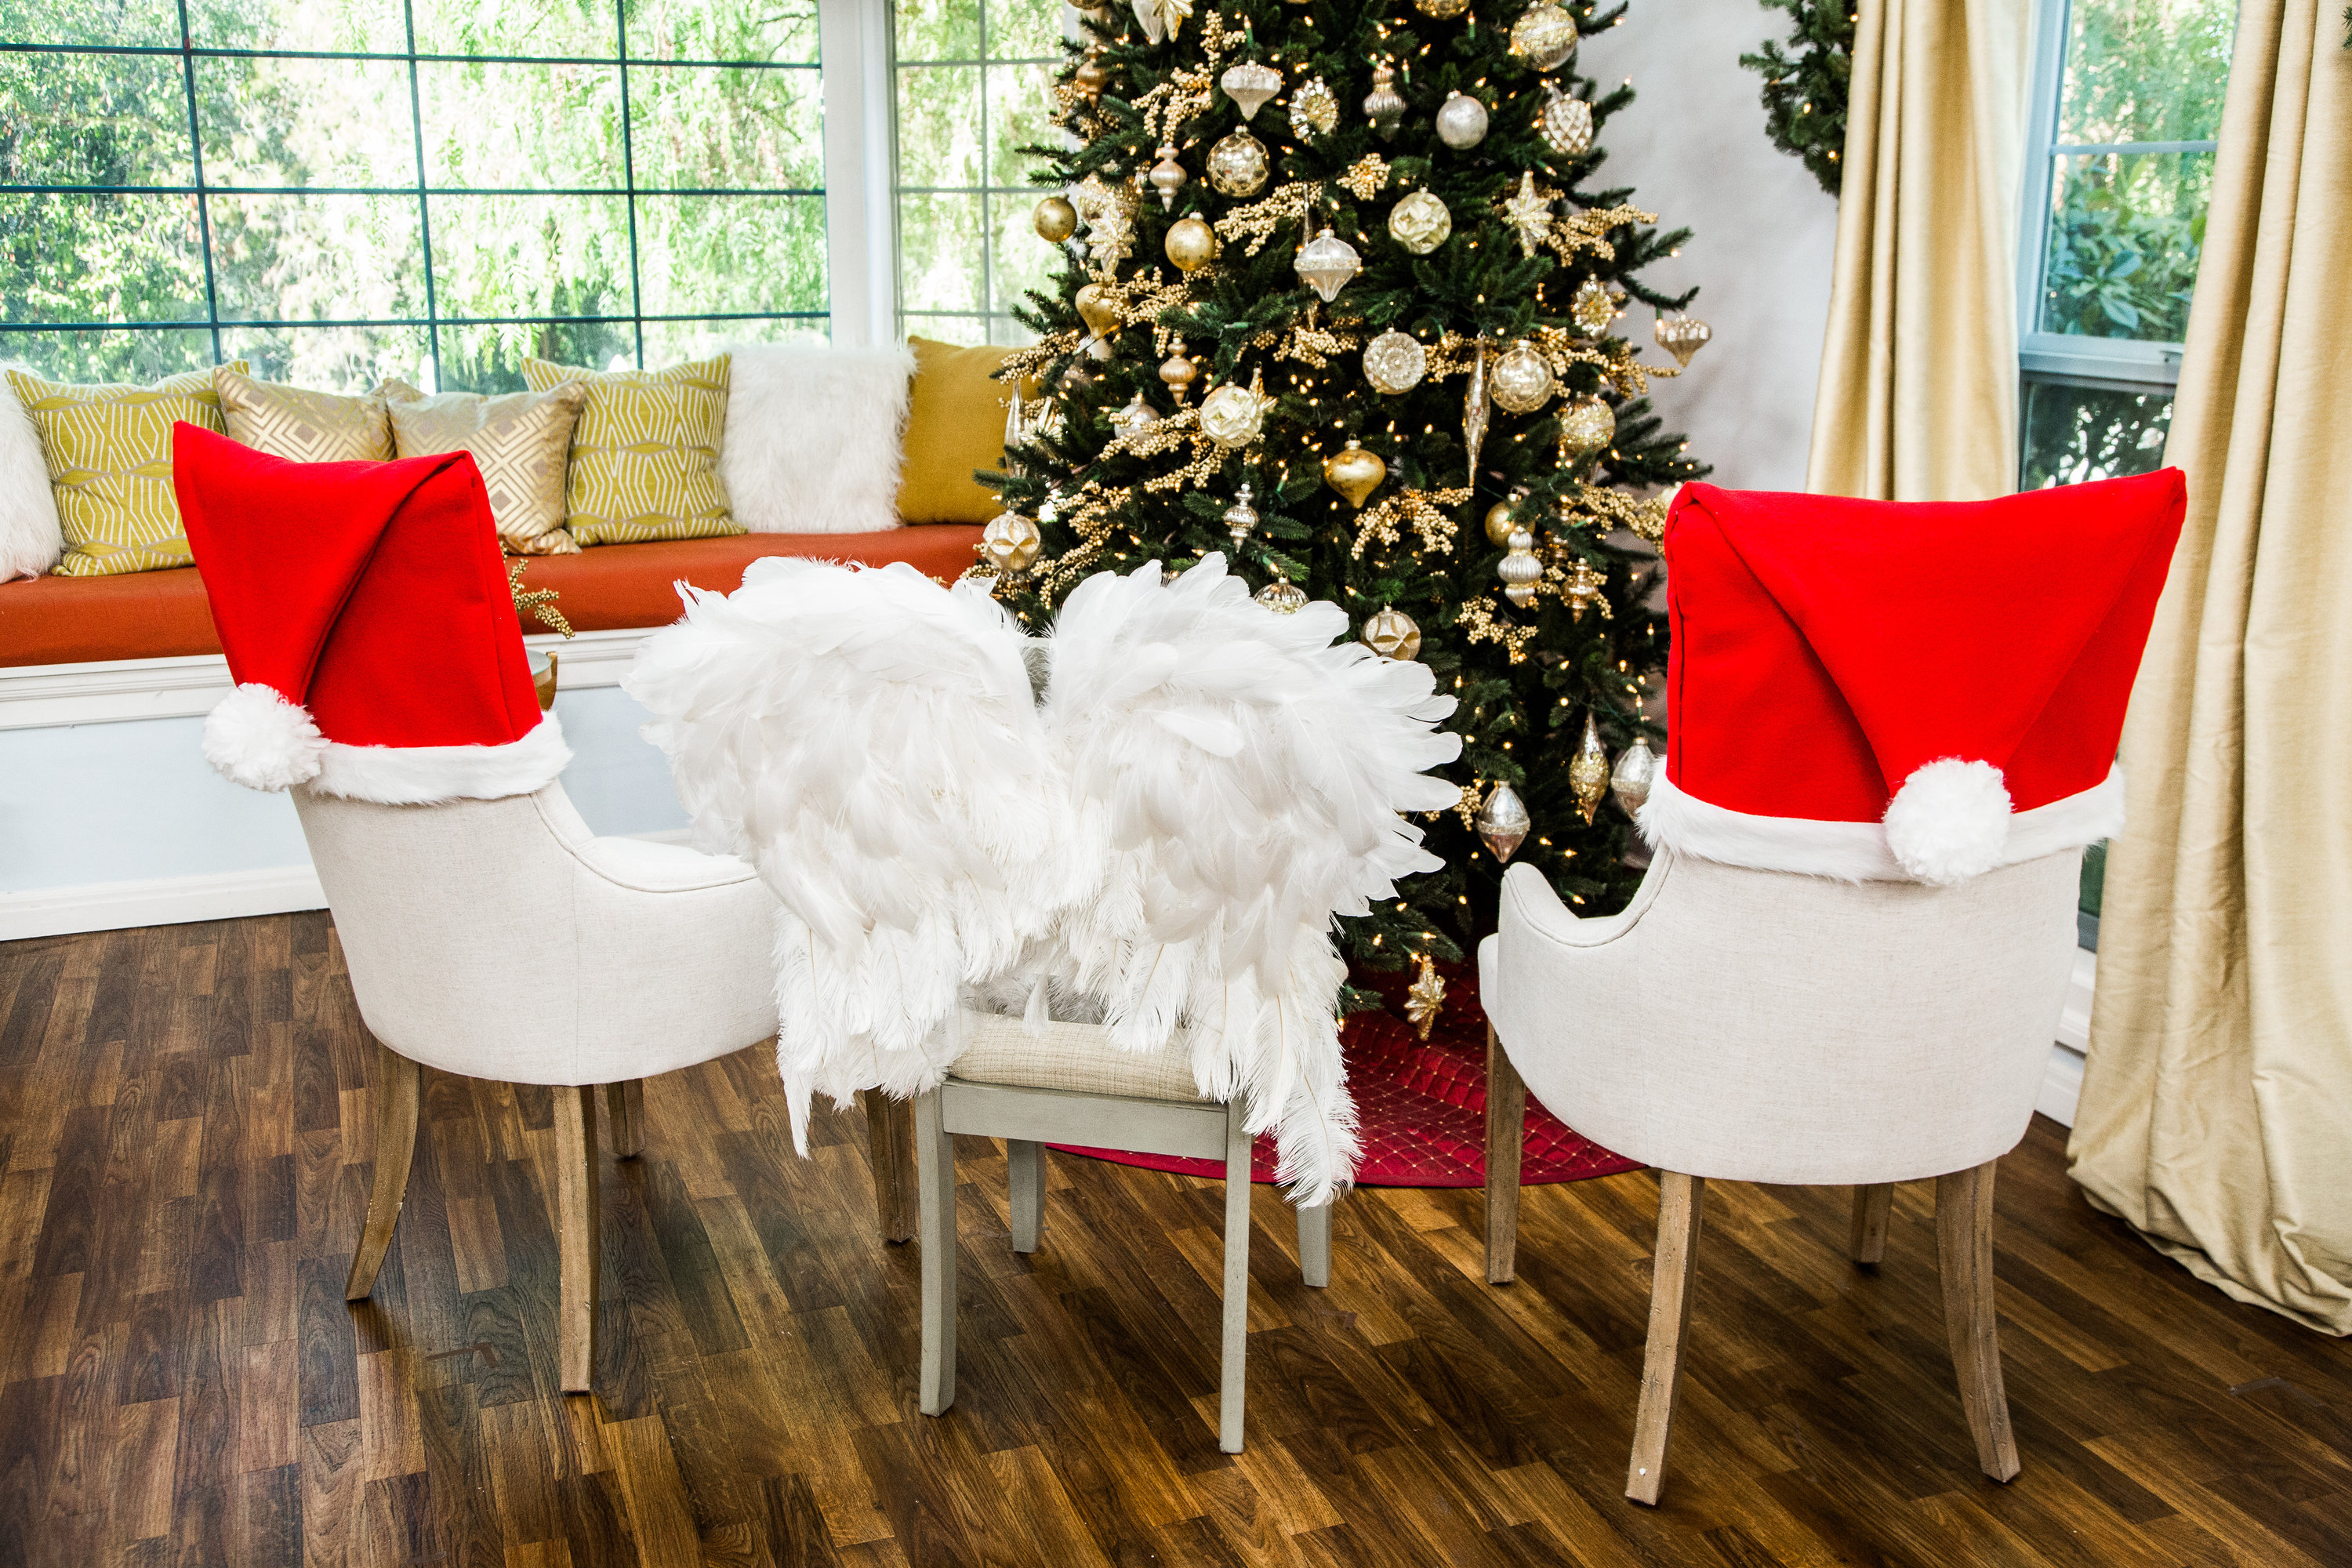 How To Diy Christmas Chair Covers Hallmark Channel